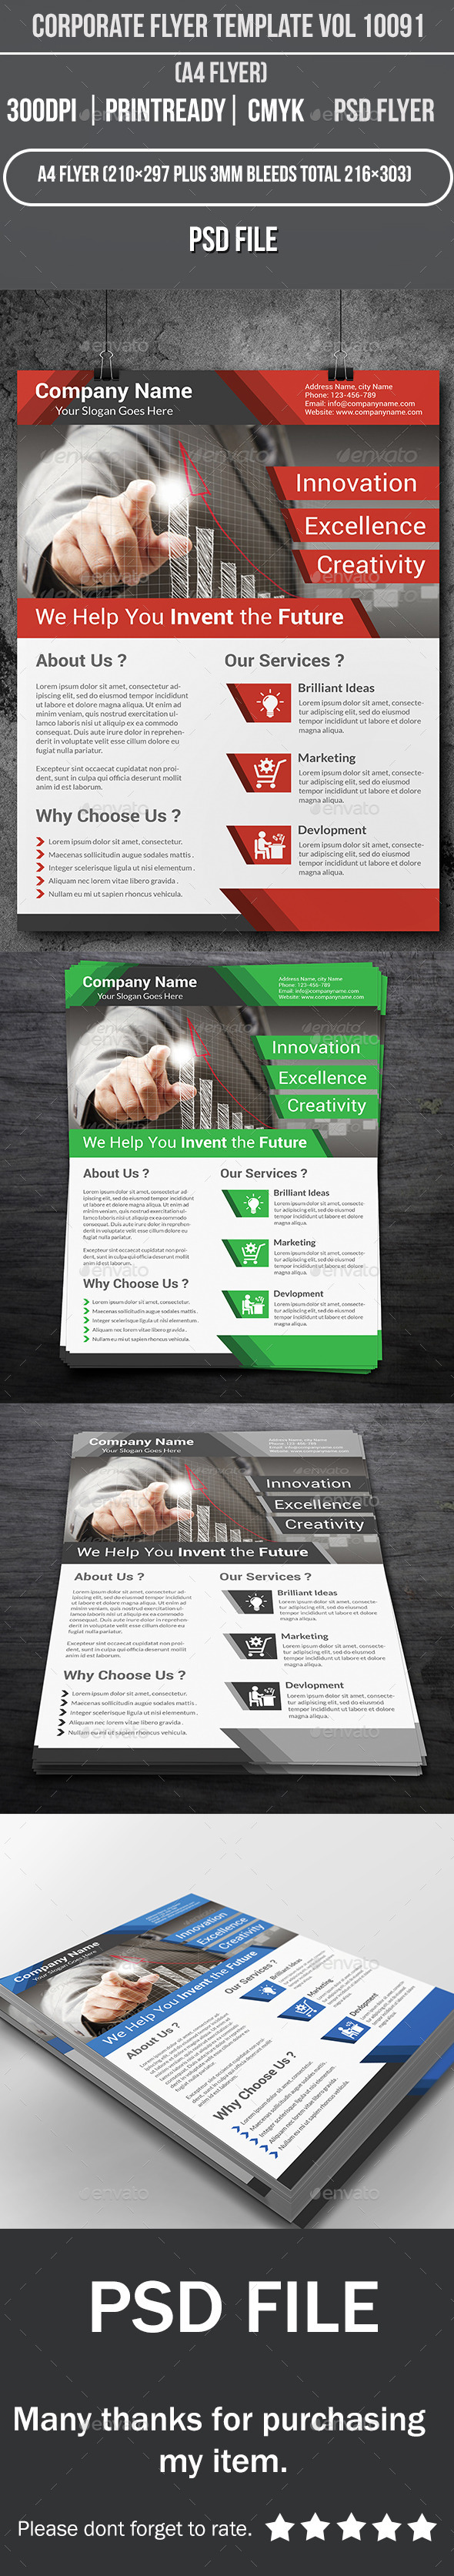 Corporate Flyer Template Vol 10091 - Corporate Flyers